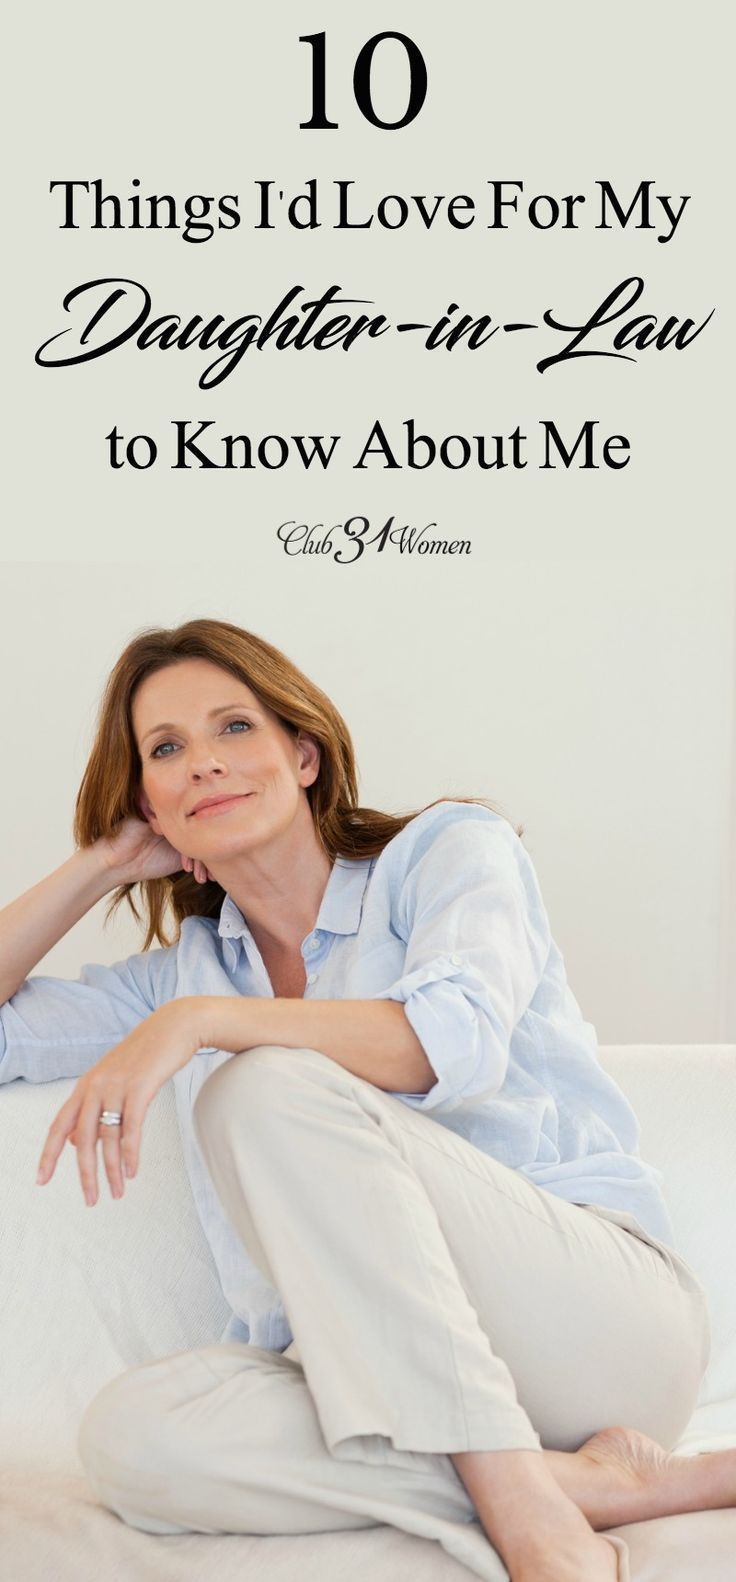 10 Things I'd Love for My DaughterinLaw to Know About Me